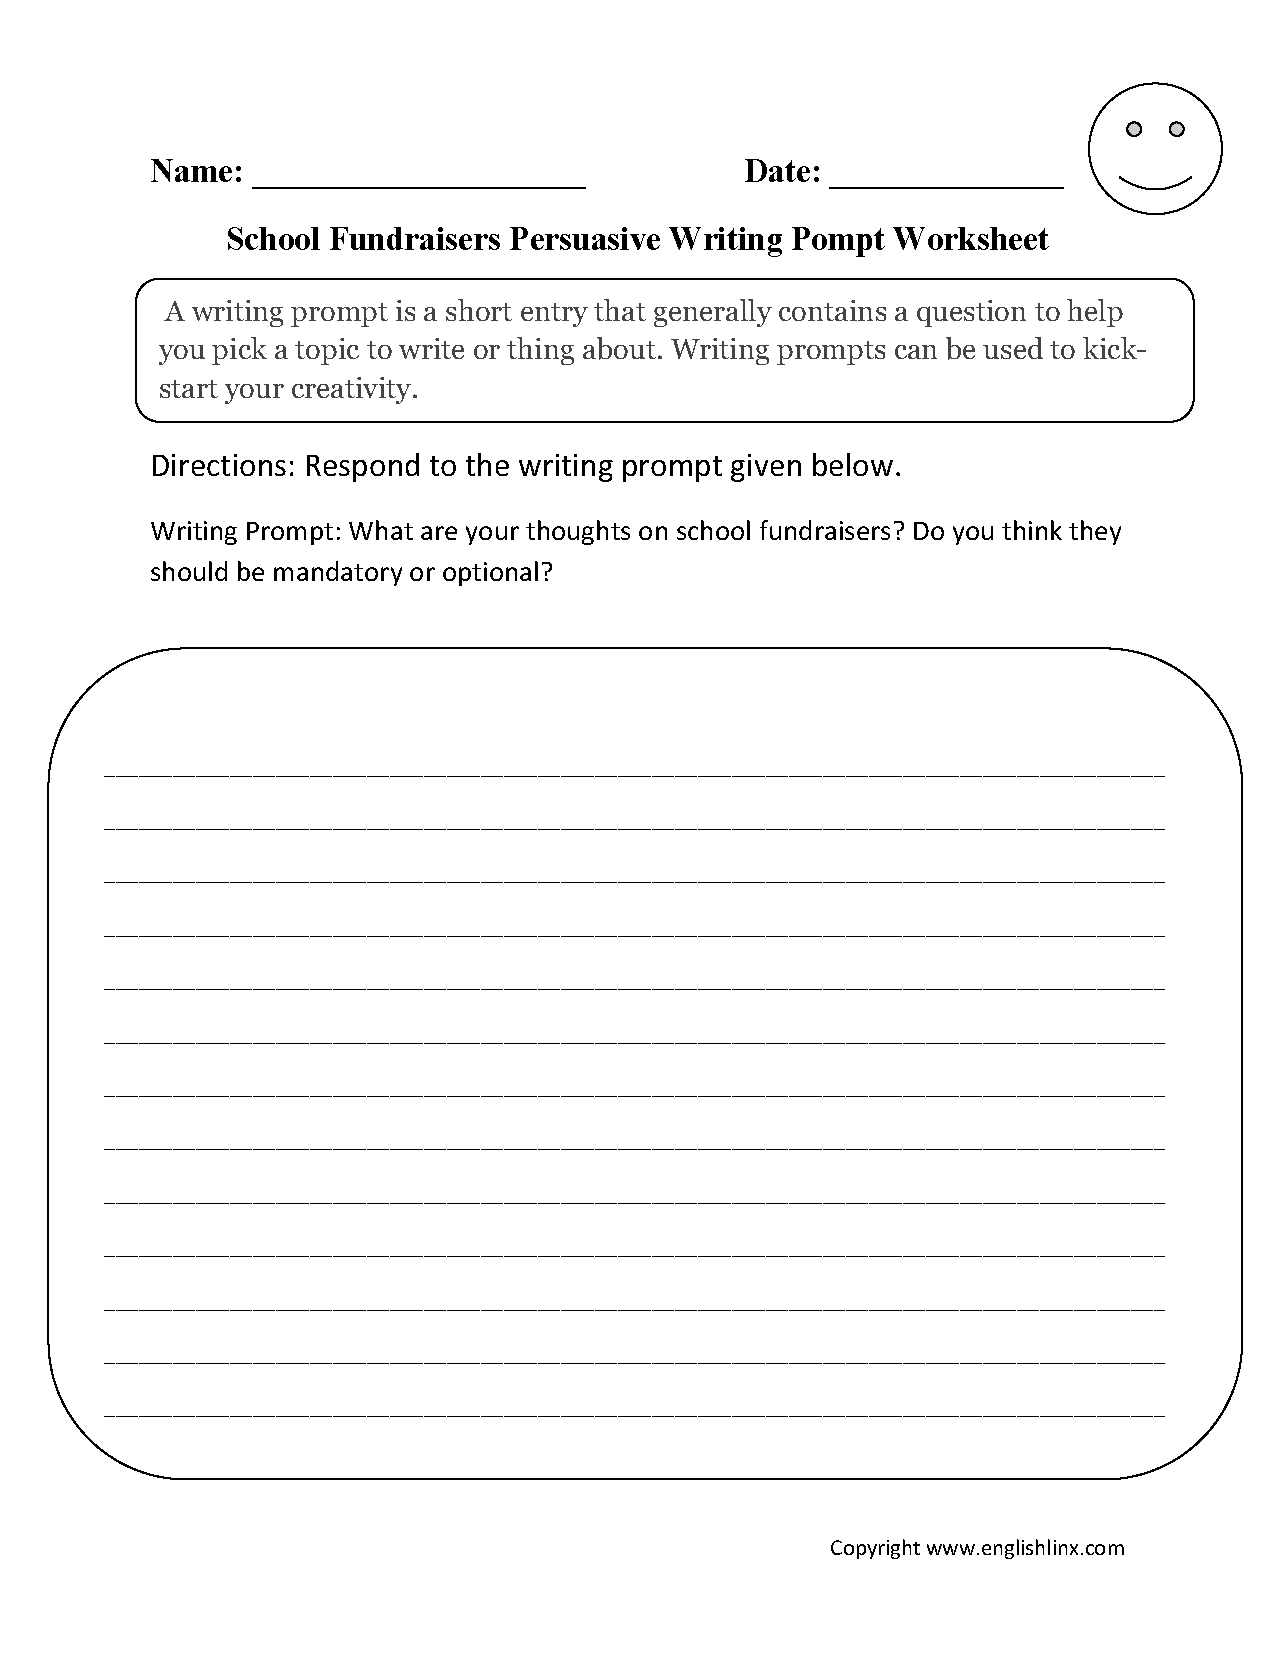 Writing Prompts Worksheets Persuasive Writing Prompts Worksheets